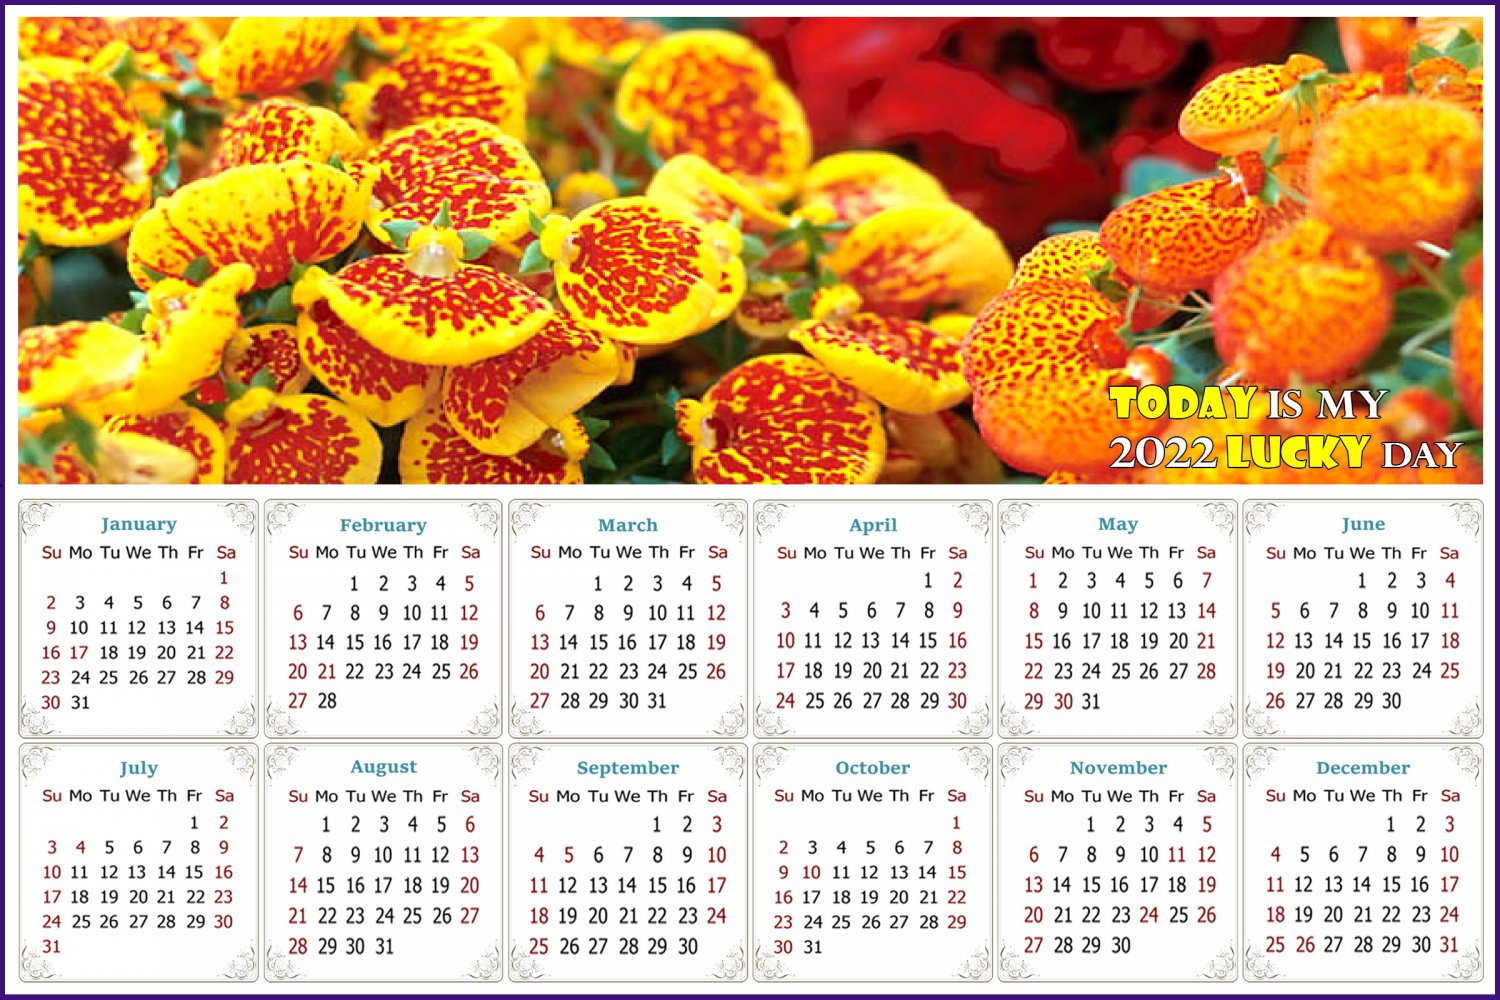 2022 Magnetic Calendar - Calendar Magnets - Today is my Lucky Day - Edition #13